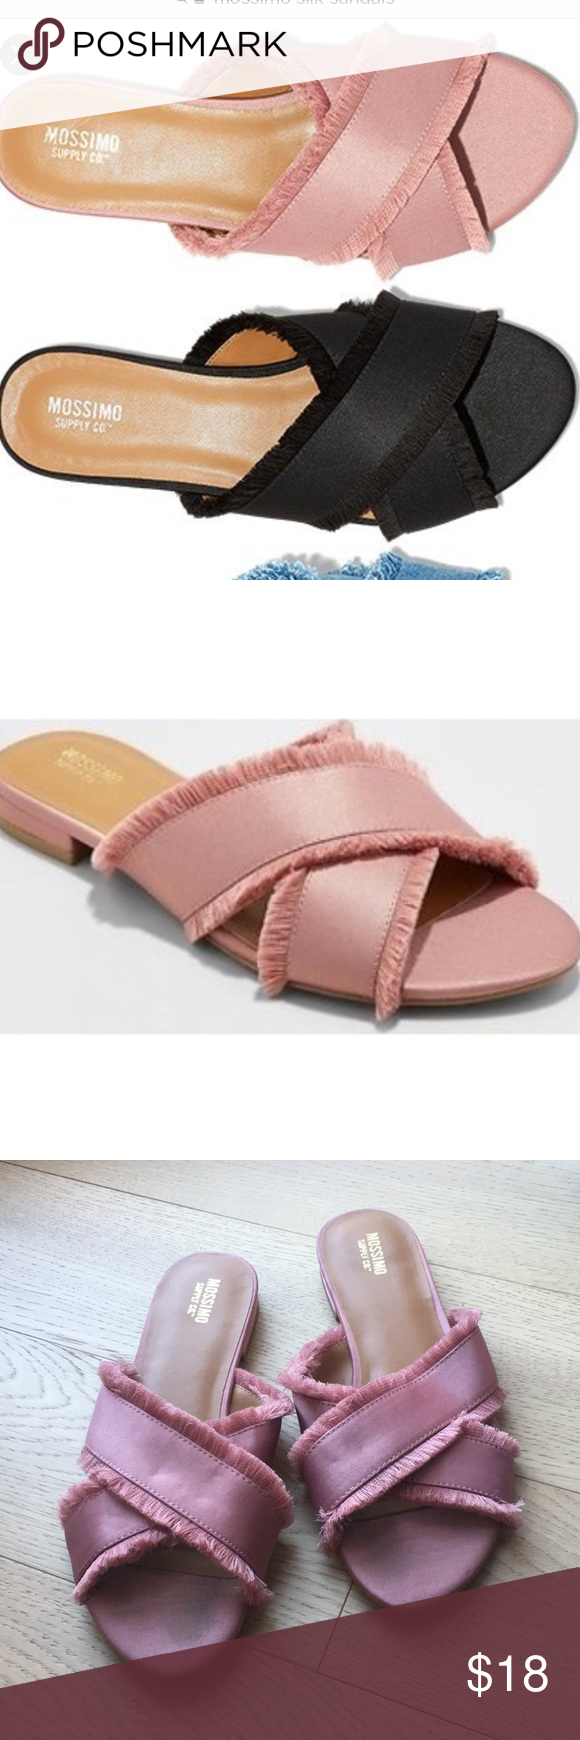 7aa942179182 Mossimo pink sandal Pink sandal from target. Excellent condition. Looks  similar to gianvito Rossi. Amazing shoe for price. Size 7.5 Mossimo Supply  Co.